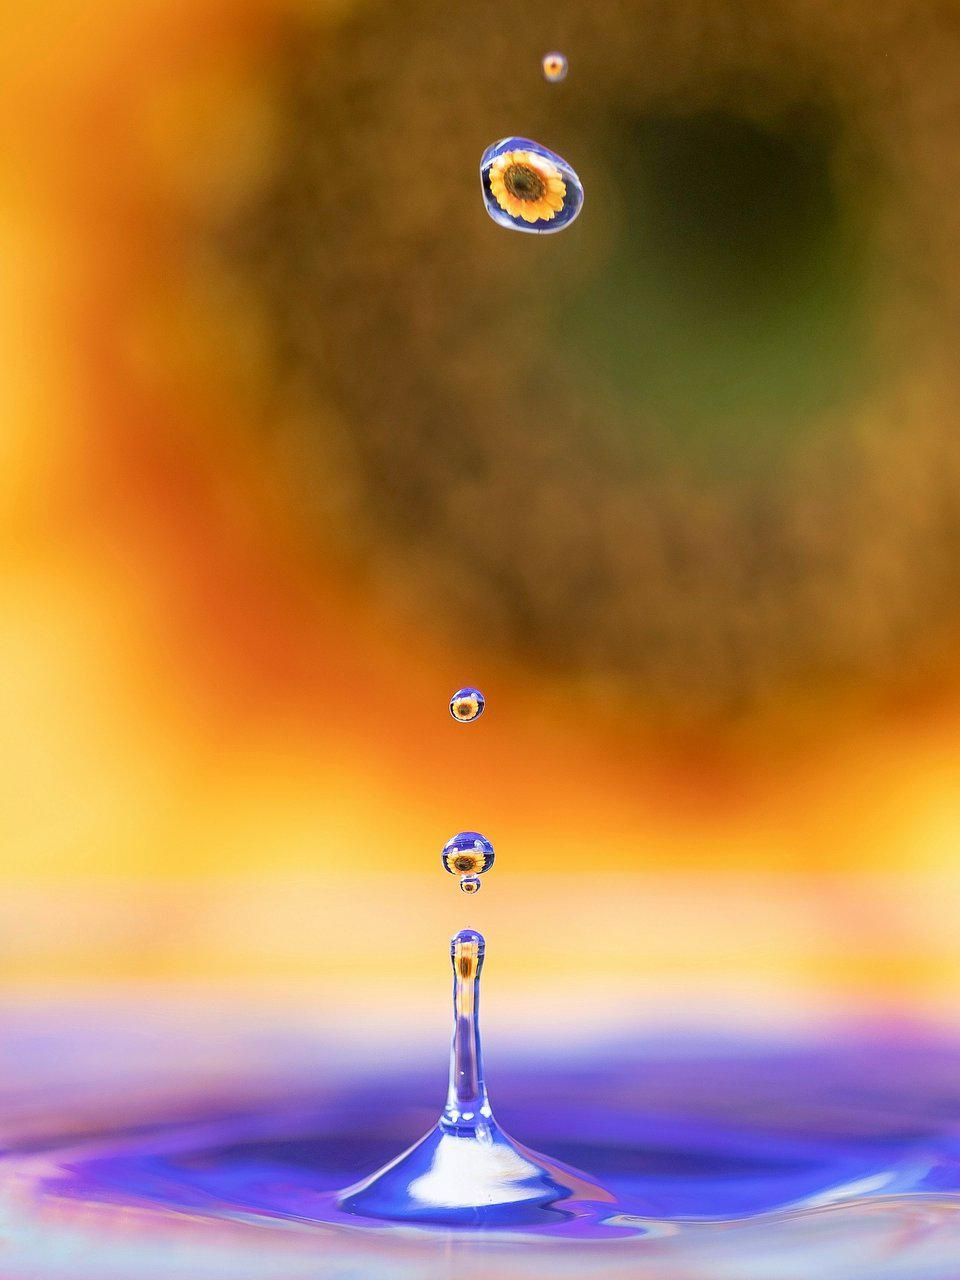 A drop of water reflecting a yellow daisy.